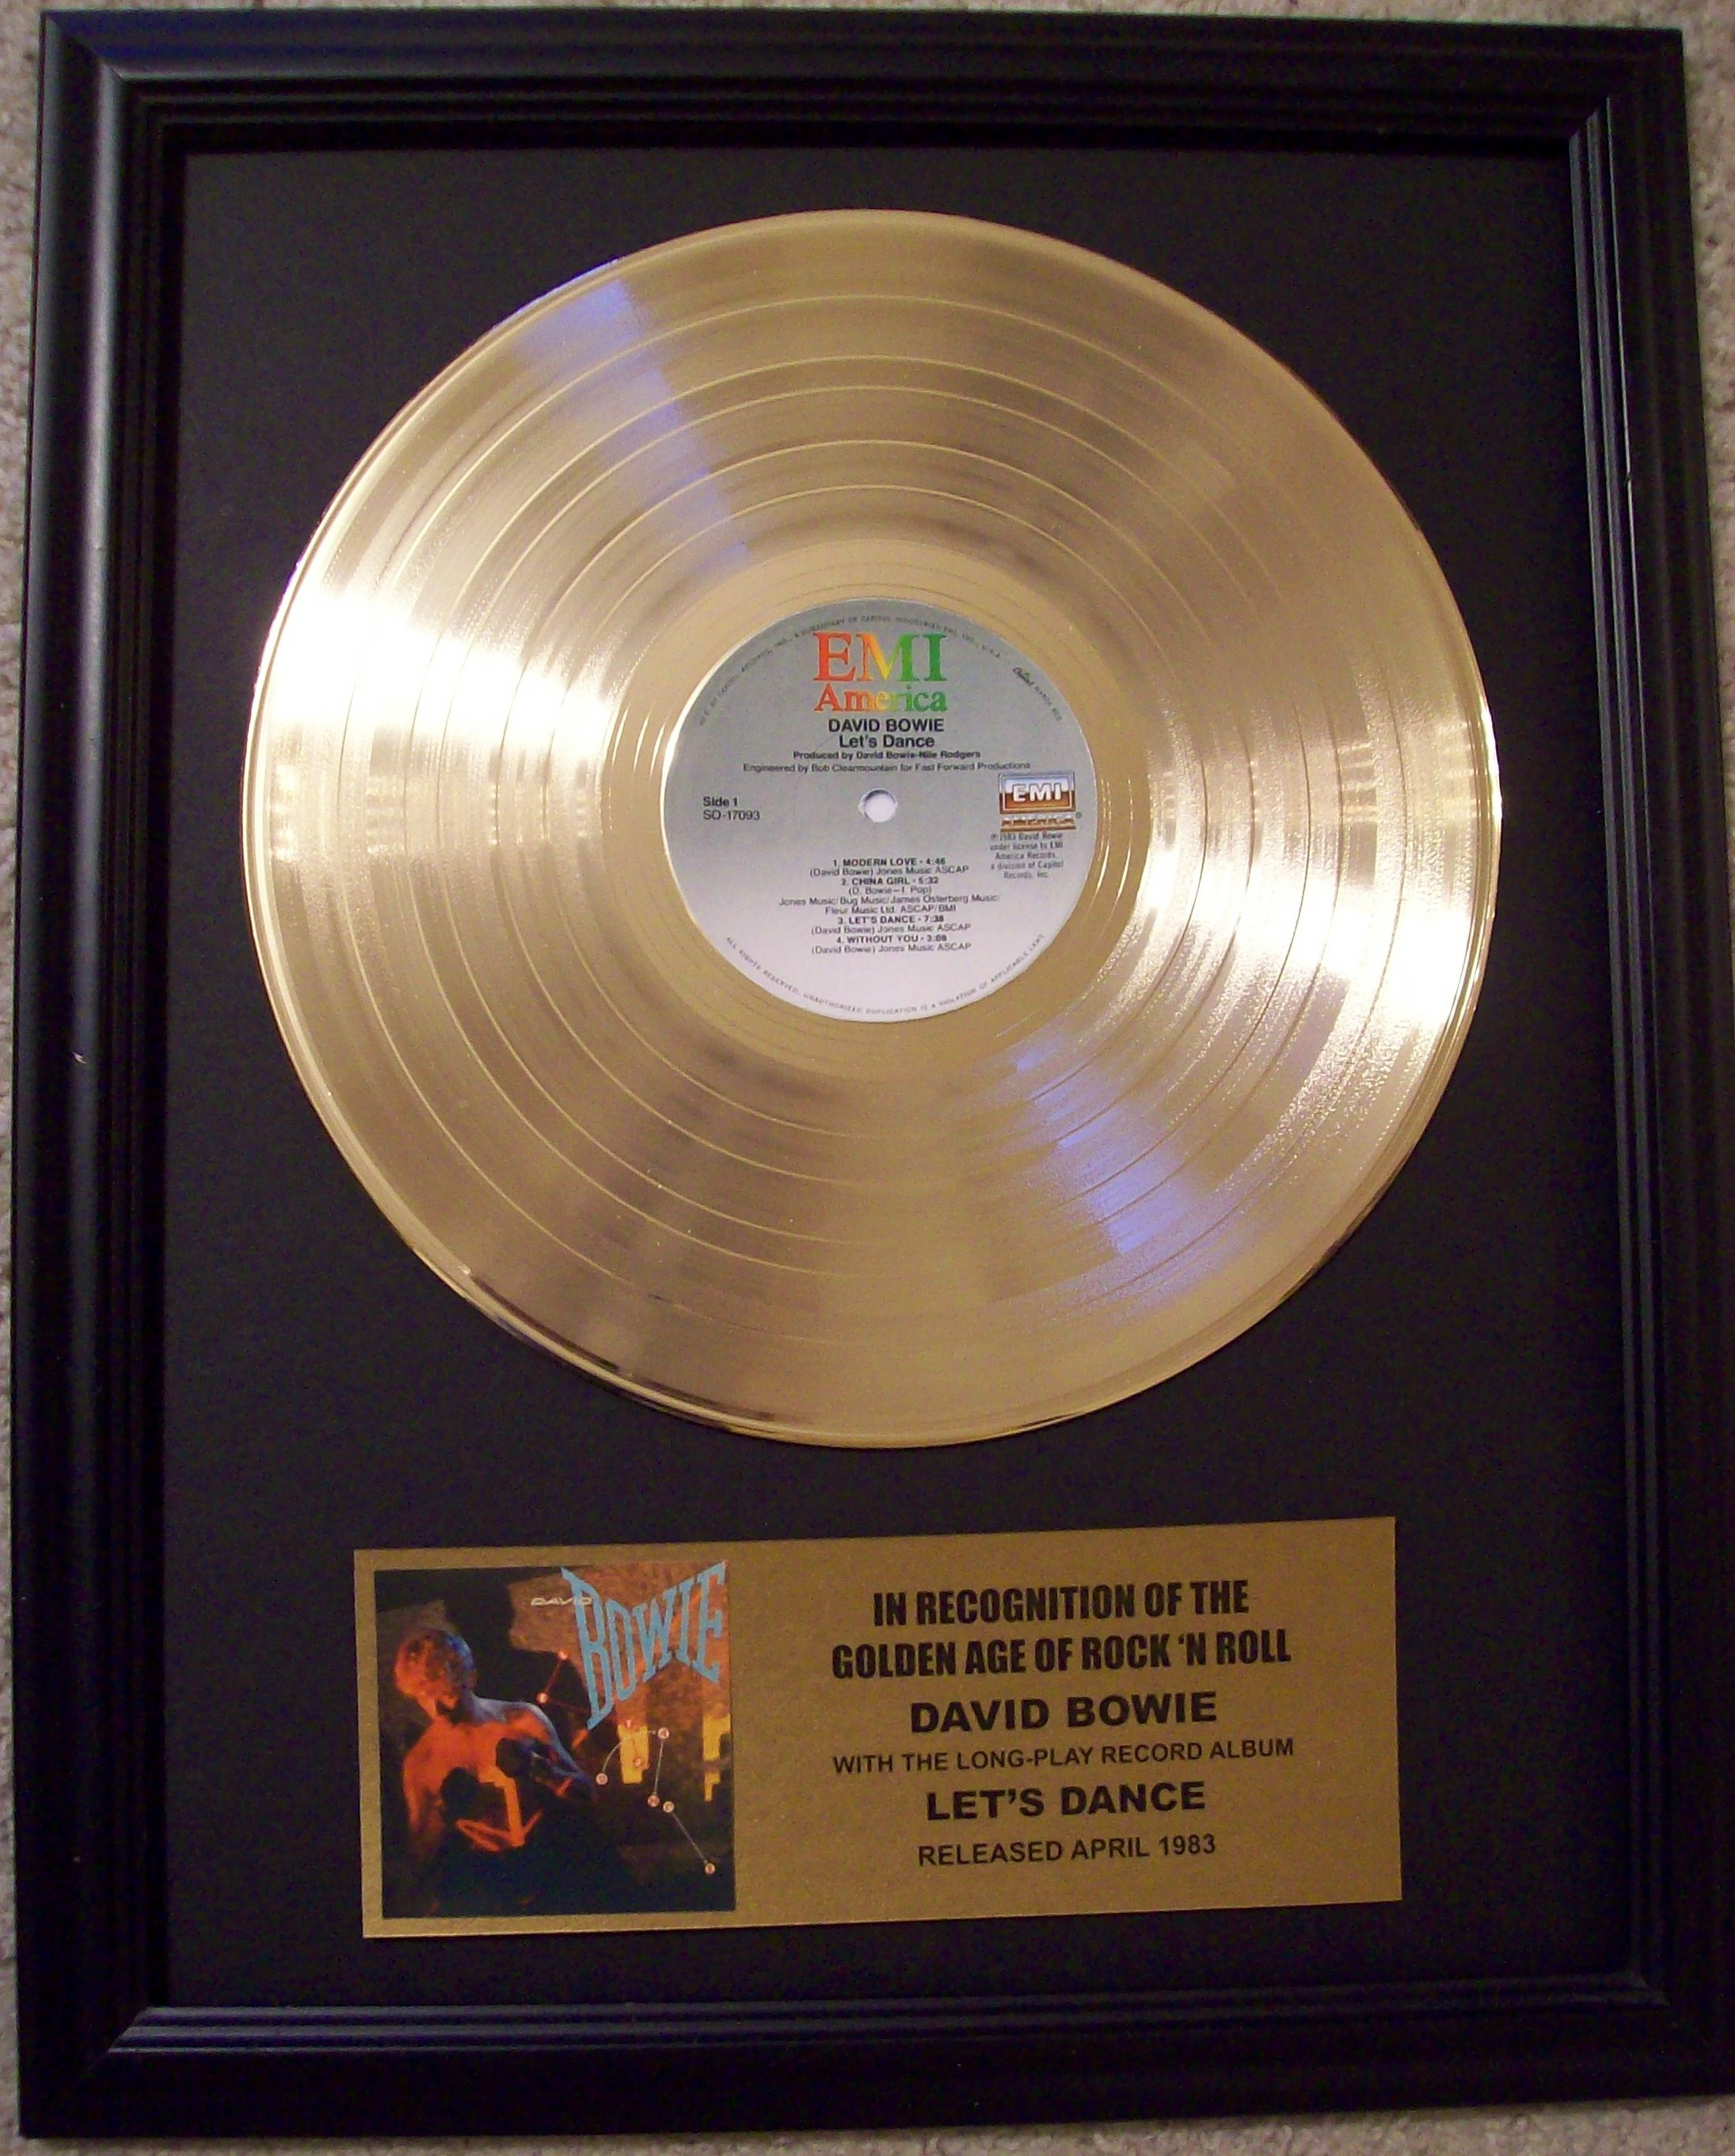 Image for David Bowie Let's Dance Gold Record Album